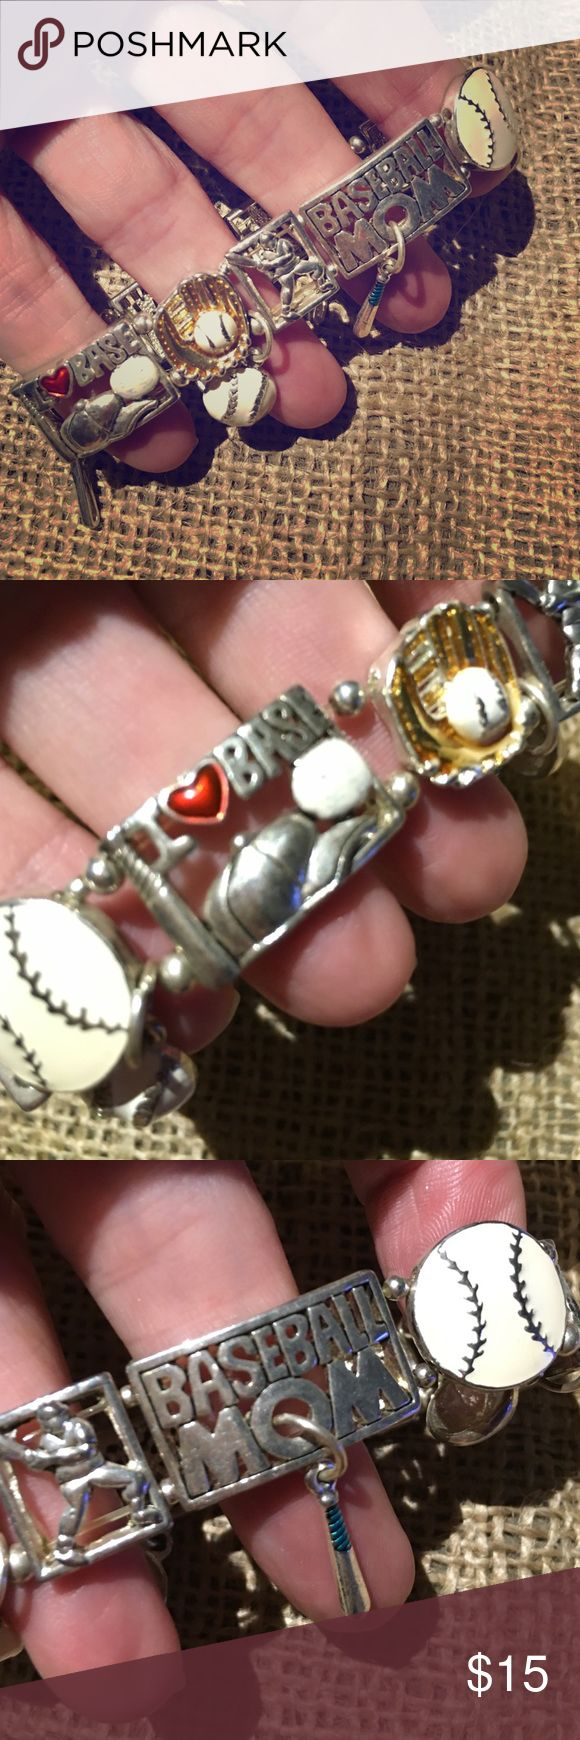 """Baseball MOM bracelet, 7"""" stretchy *****MUST HAVE *****    Baseball MOM bracelet, 7"""" stretchy   This is a MUST HAVE bracelet for ANY crazy baseball mom!!   Show your support for your favorite player by wearing this bracelet at his game!  Price is firm. Thank you. Accessories"""